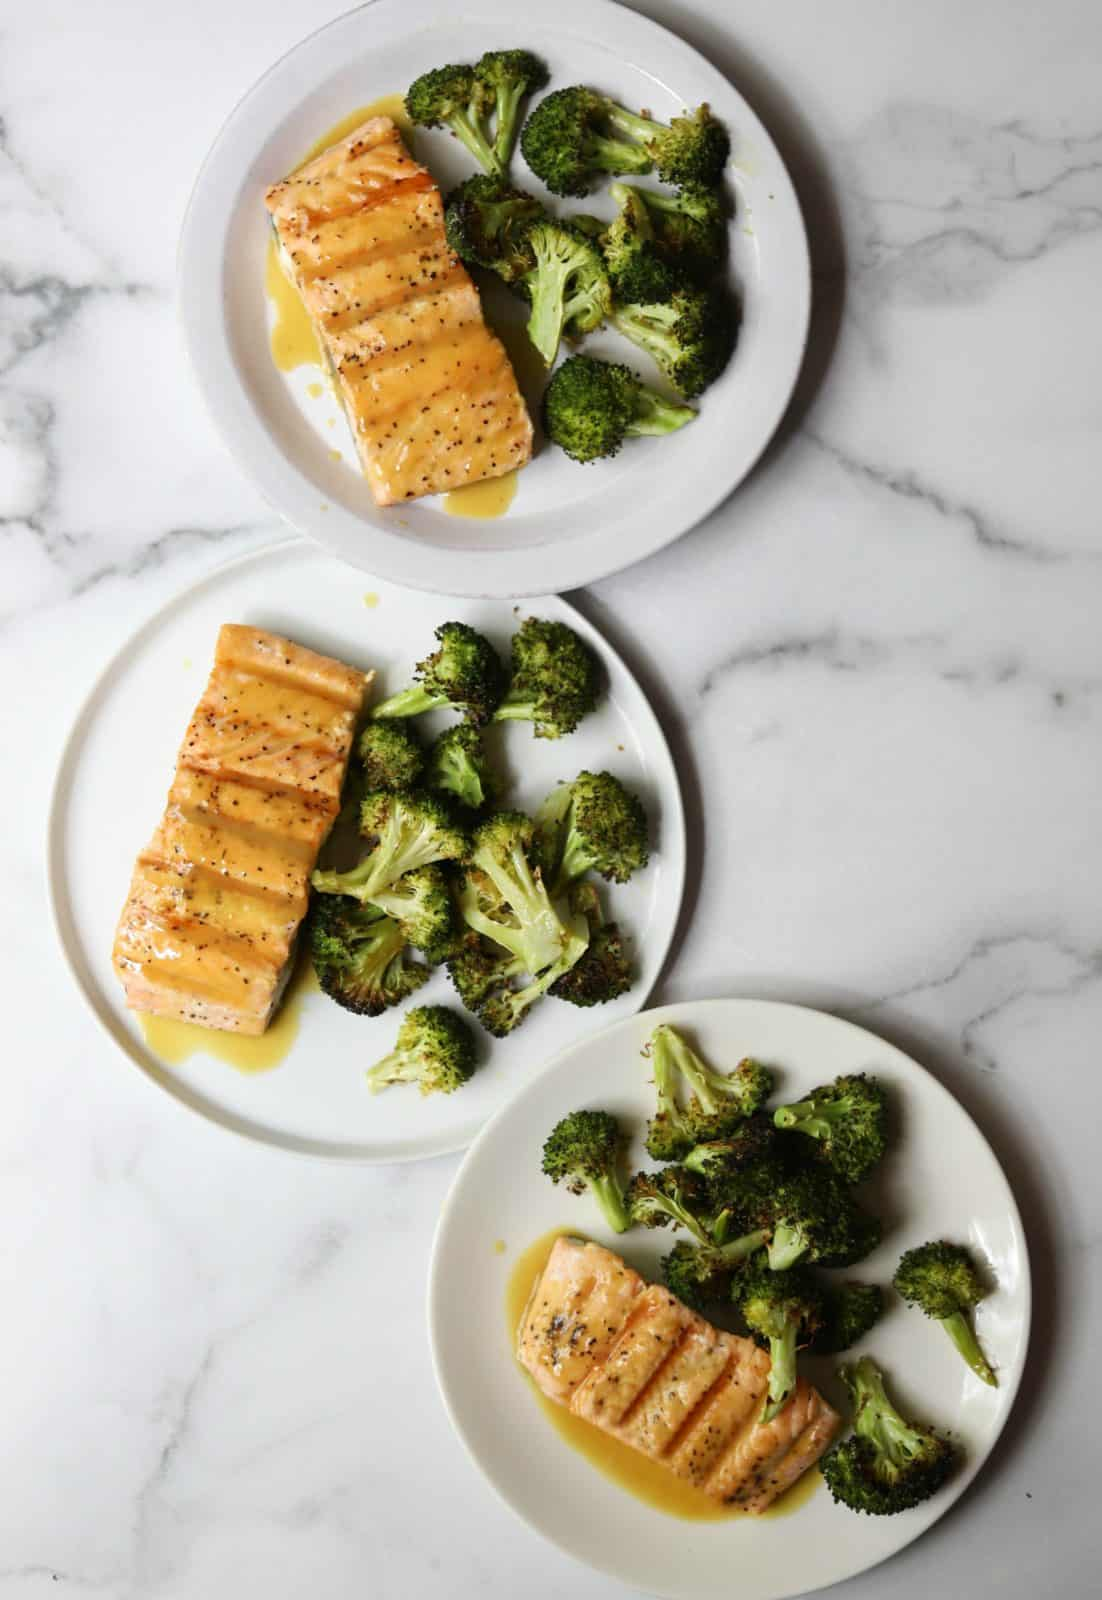 Maple roasted salmon and broccoli on 3 white plates